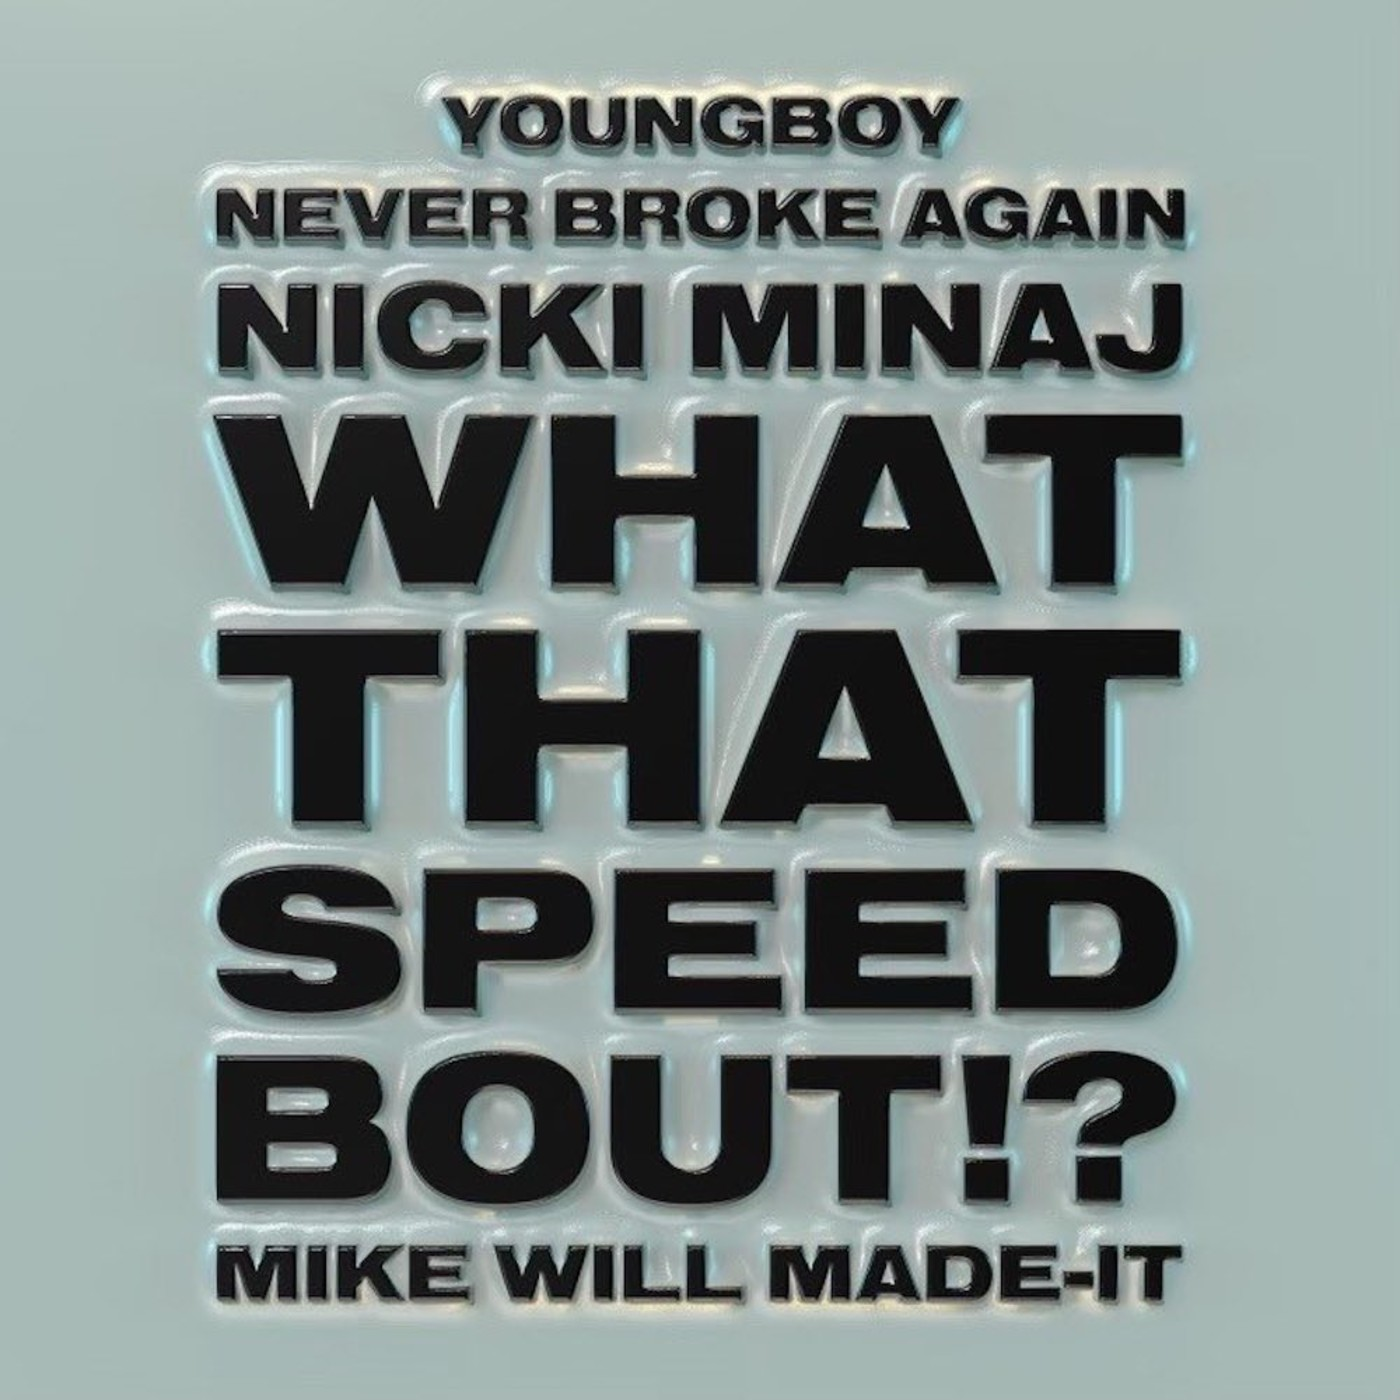 """Nicki Minaj and YoungBoy NeverBrokeAgain Connect for """"What That Bout"""" 